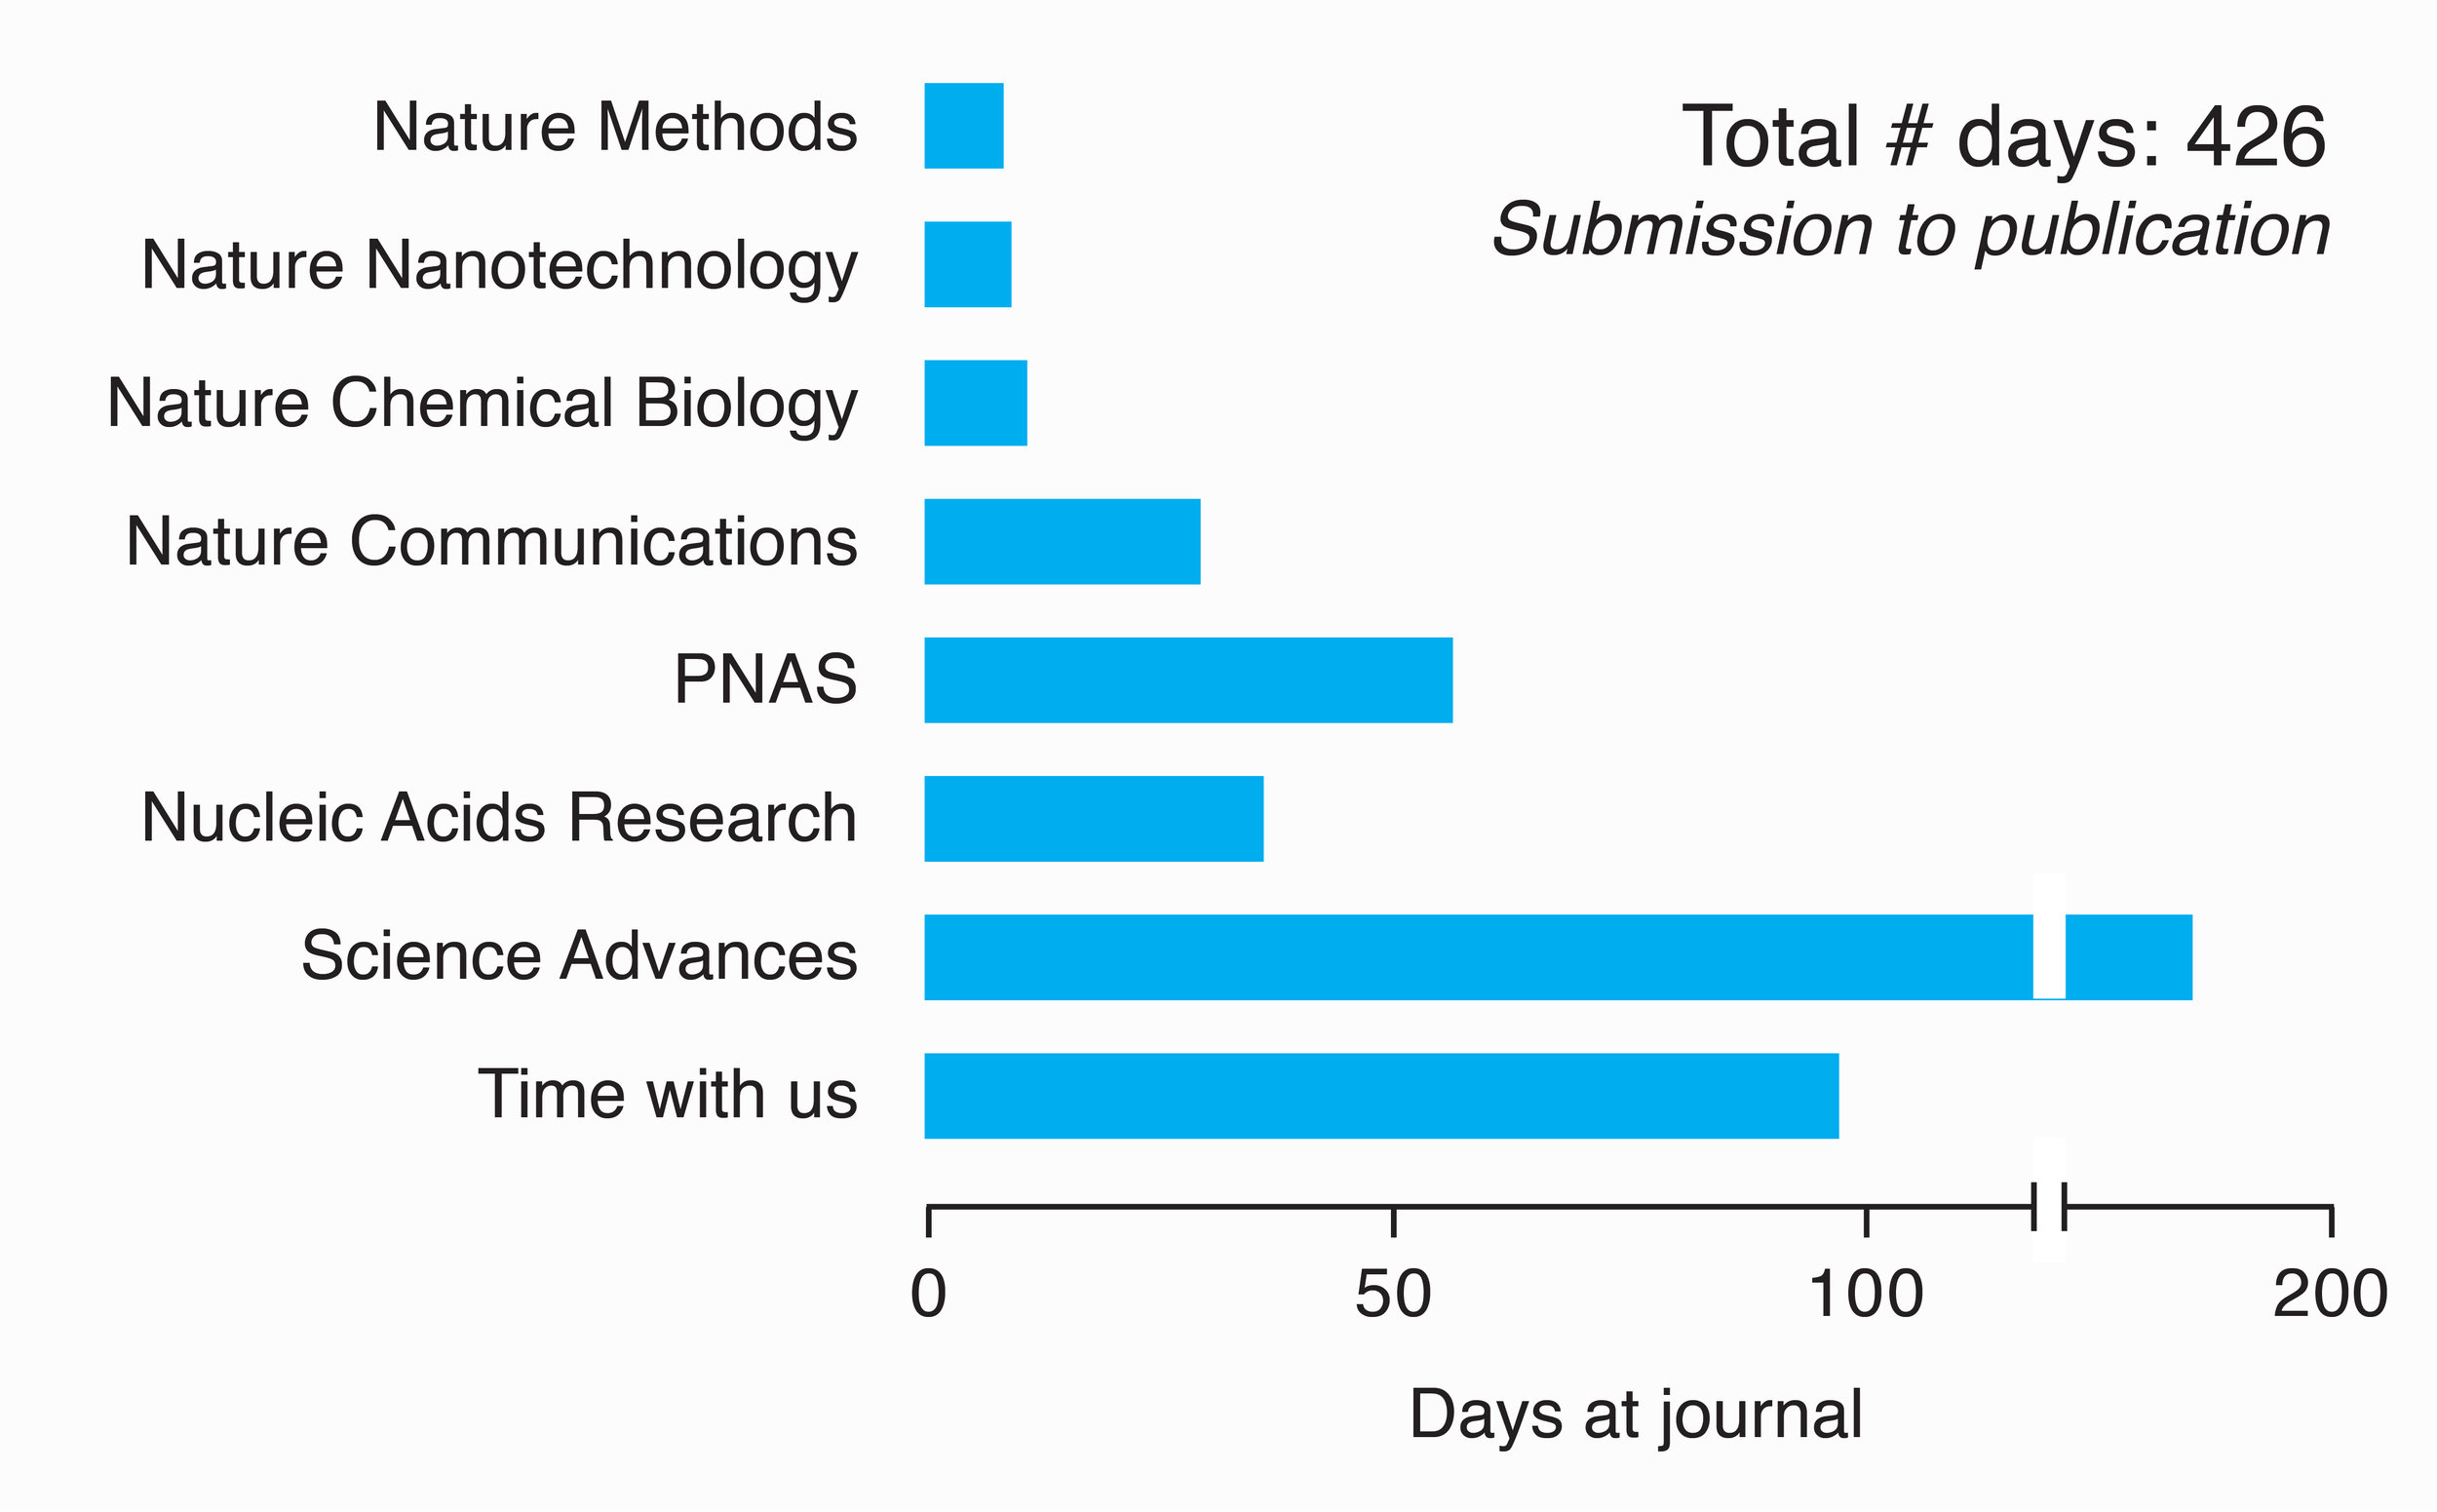 Time our article spent at different journals, in order of submission from top to bottom.